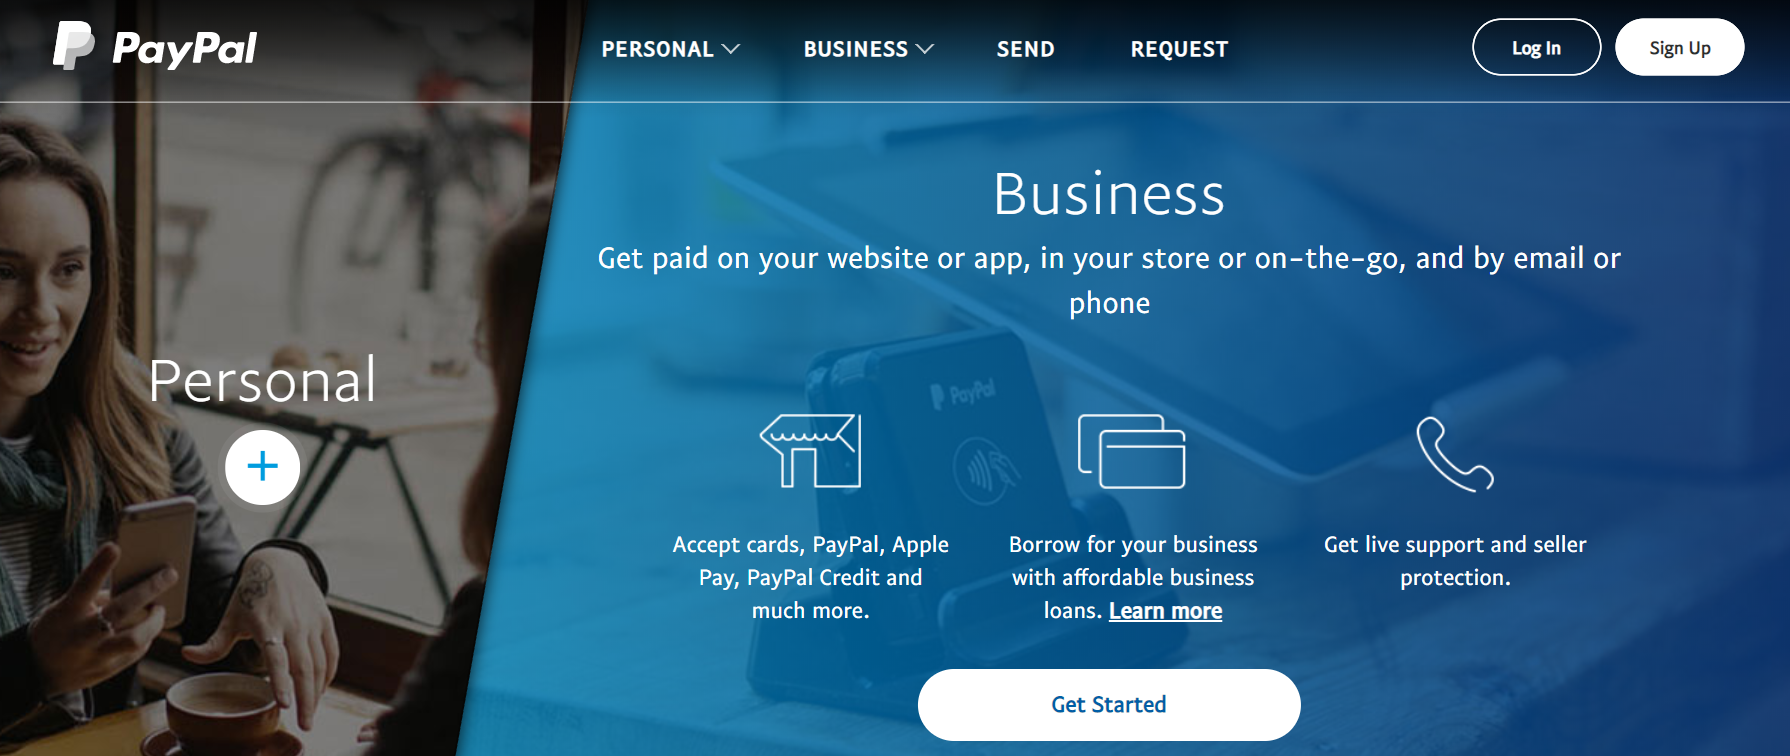 Payment Gateway on the Site PayPal